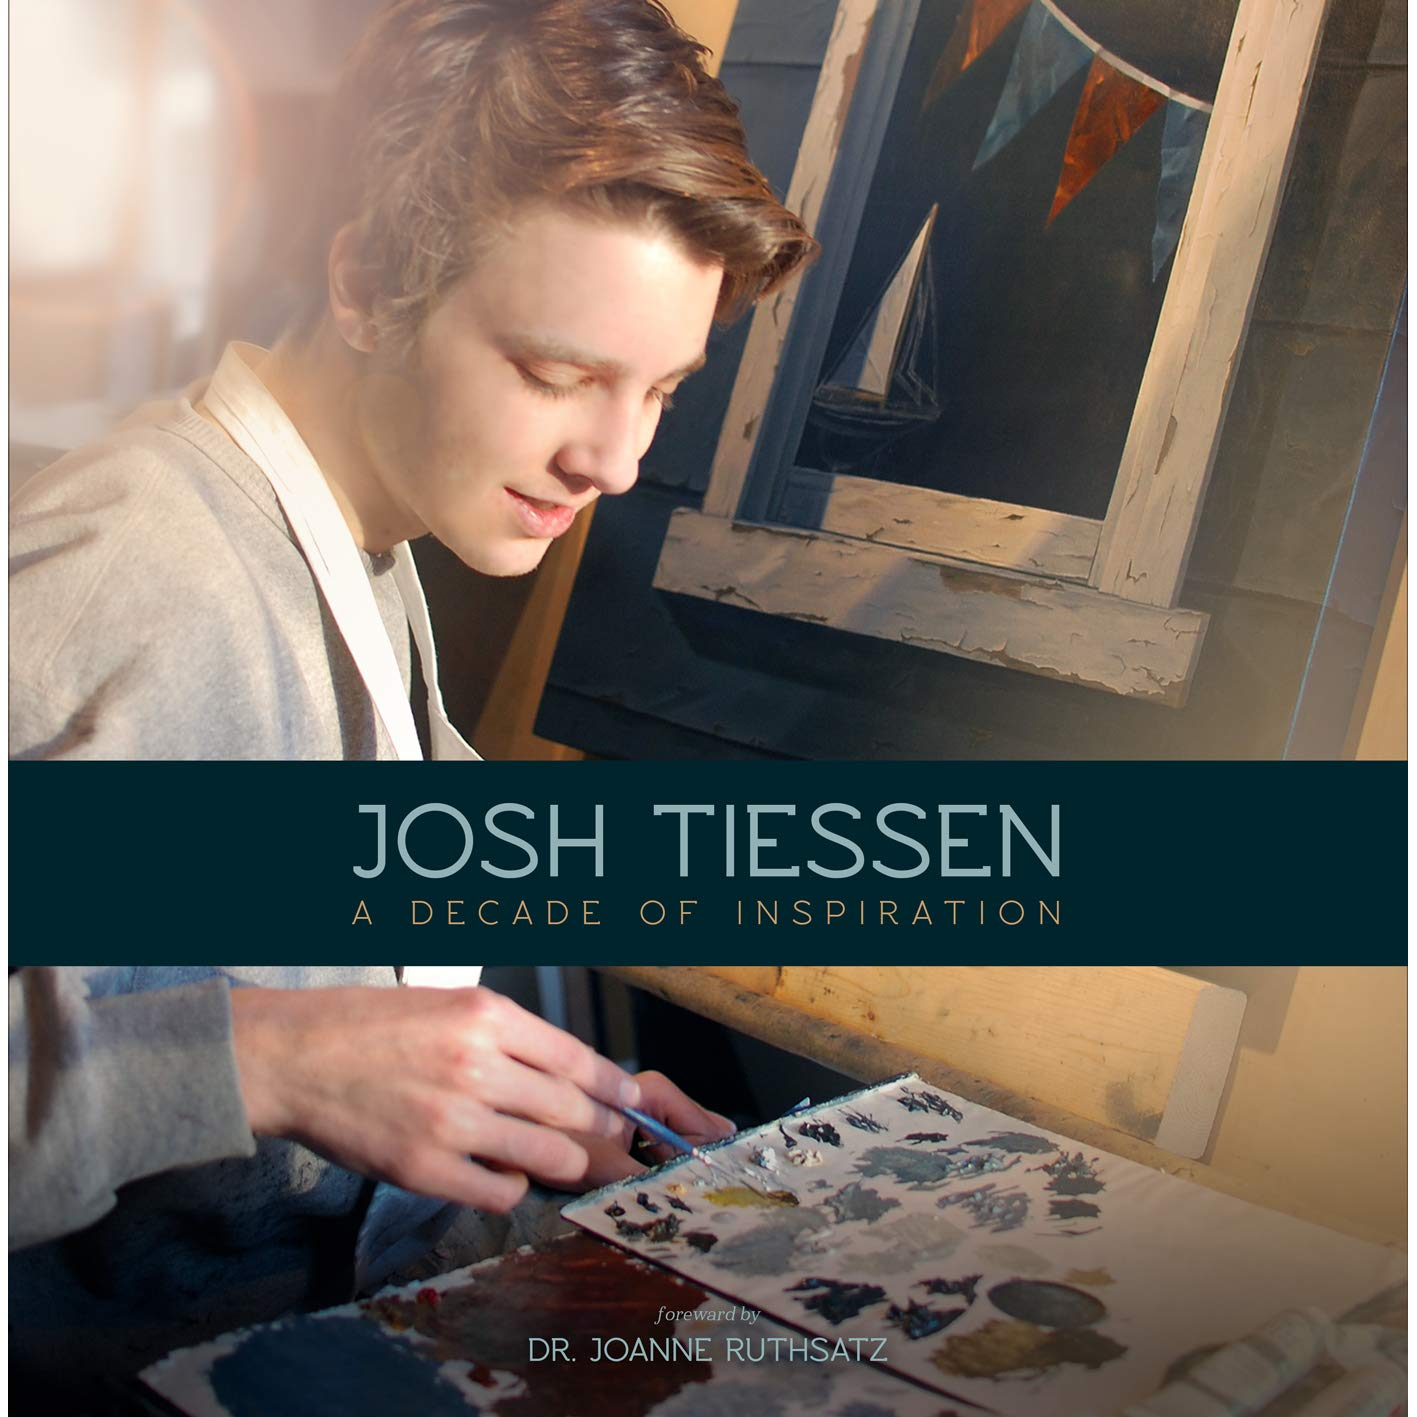 Josh Tiessen: A Decade of Inspiration (Gallery Edition)